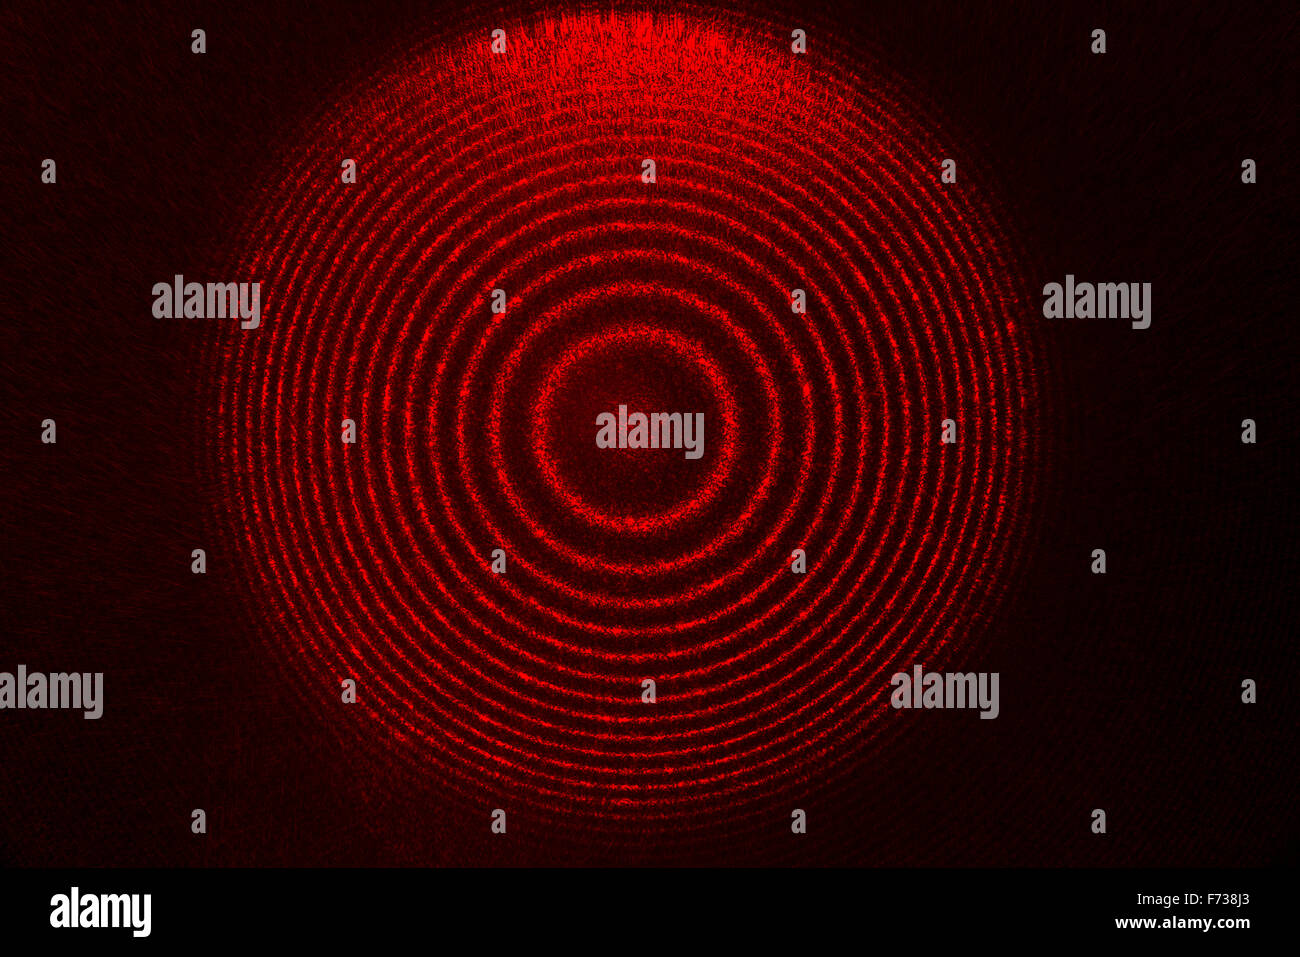 Interference Pattern Awesome Inspiration